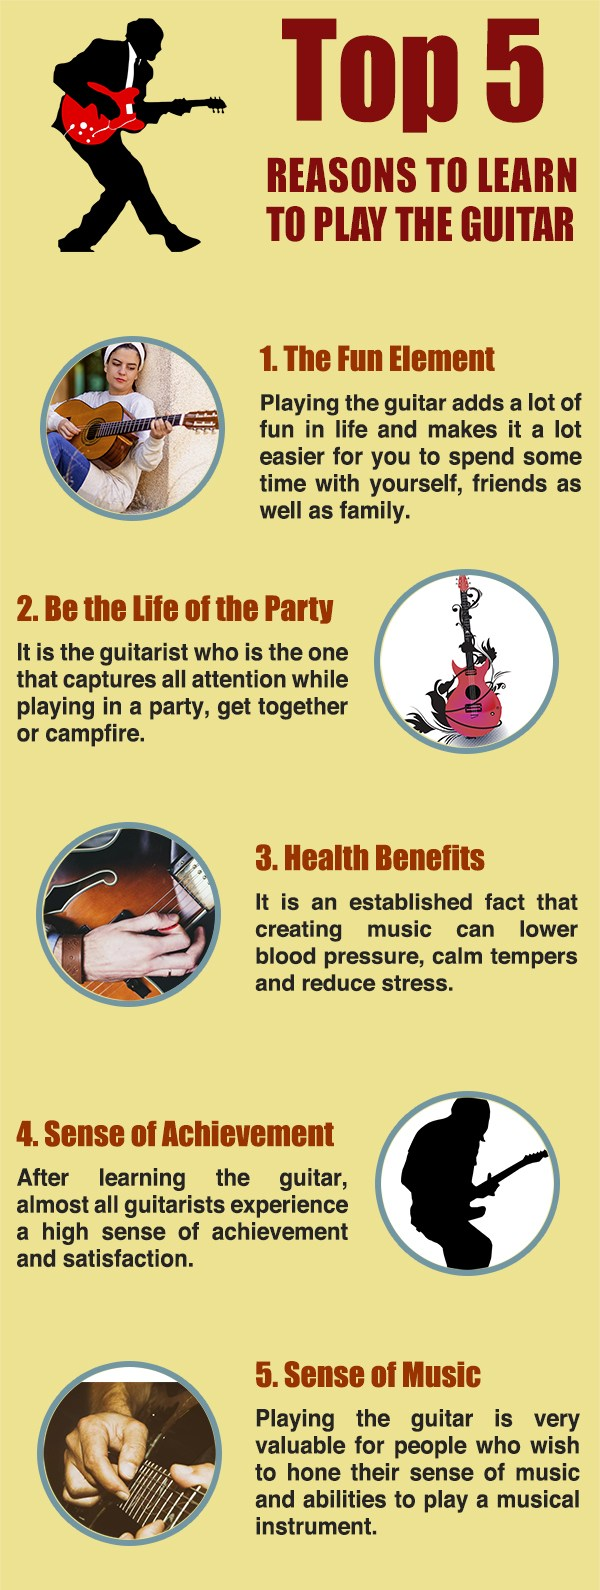 Top 5 Reasons to Learn How to Play the Guitar